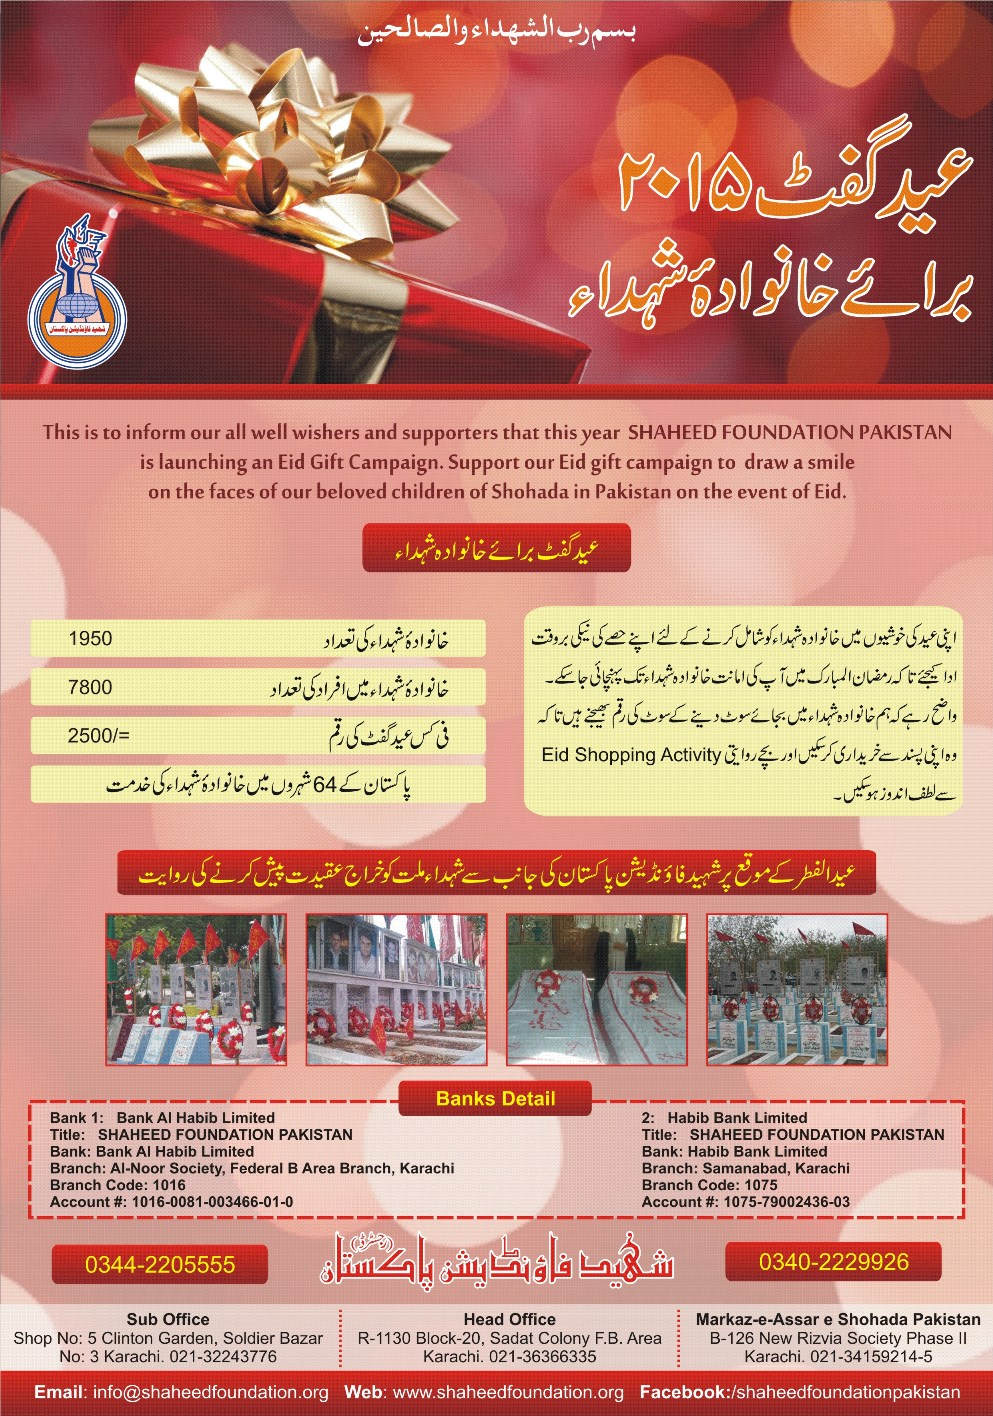 Eid Gift project 2015: Eid Gifts for the Families of the Beloved Martyrs